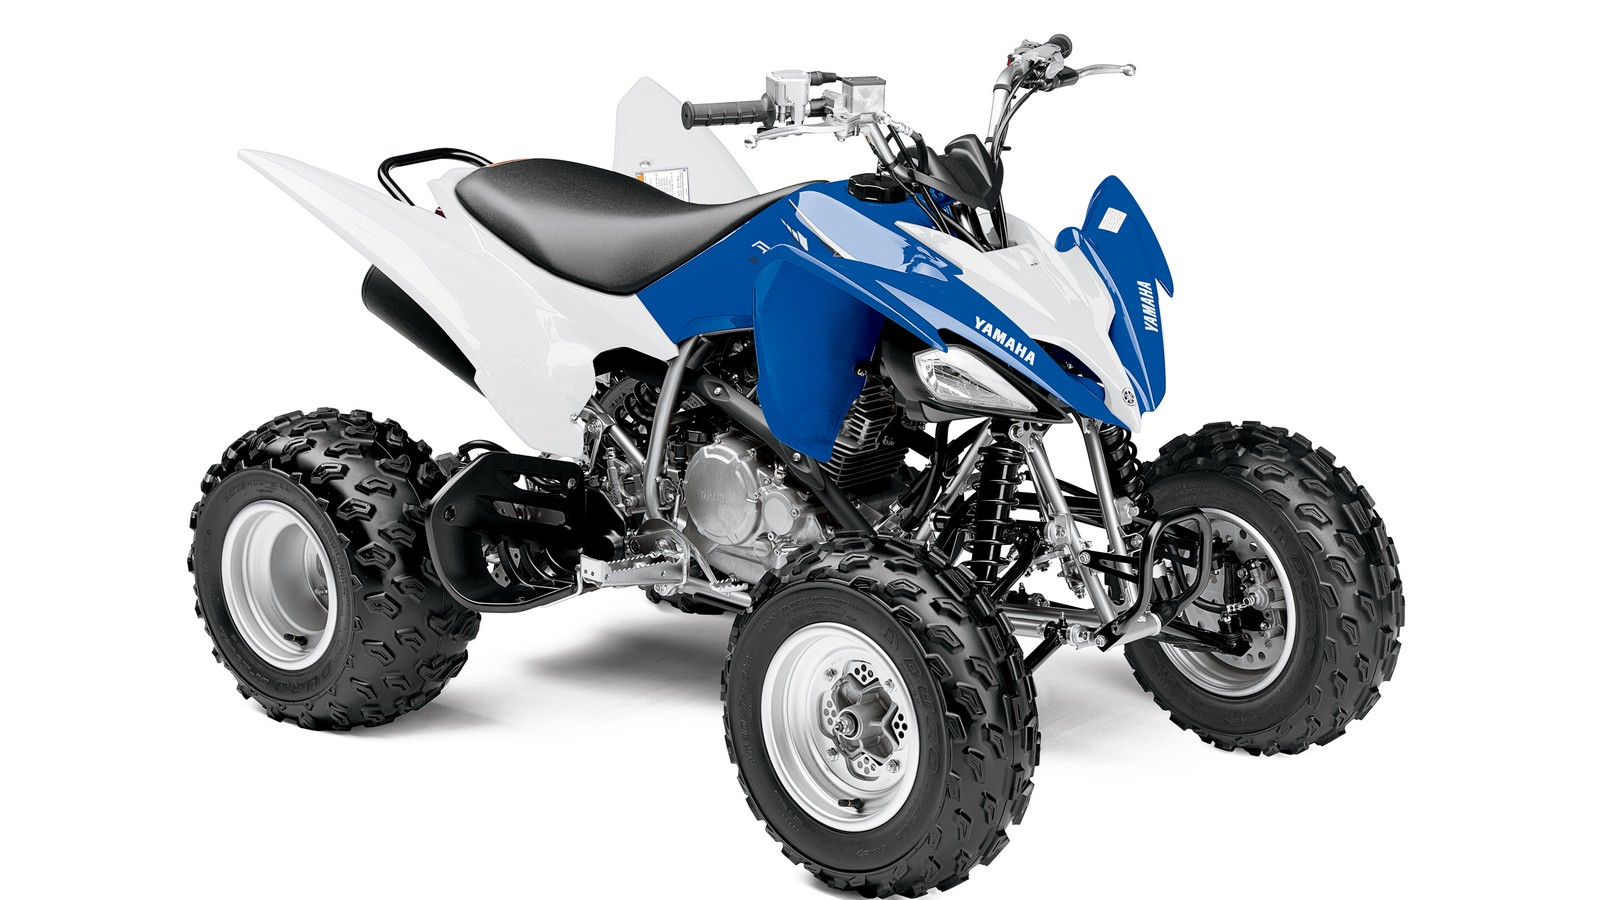 2013 yamaha raptor 250 pictures photos wallpapers top for Yamaha raptor 250 price